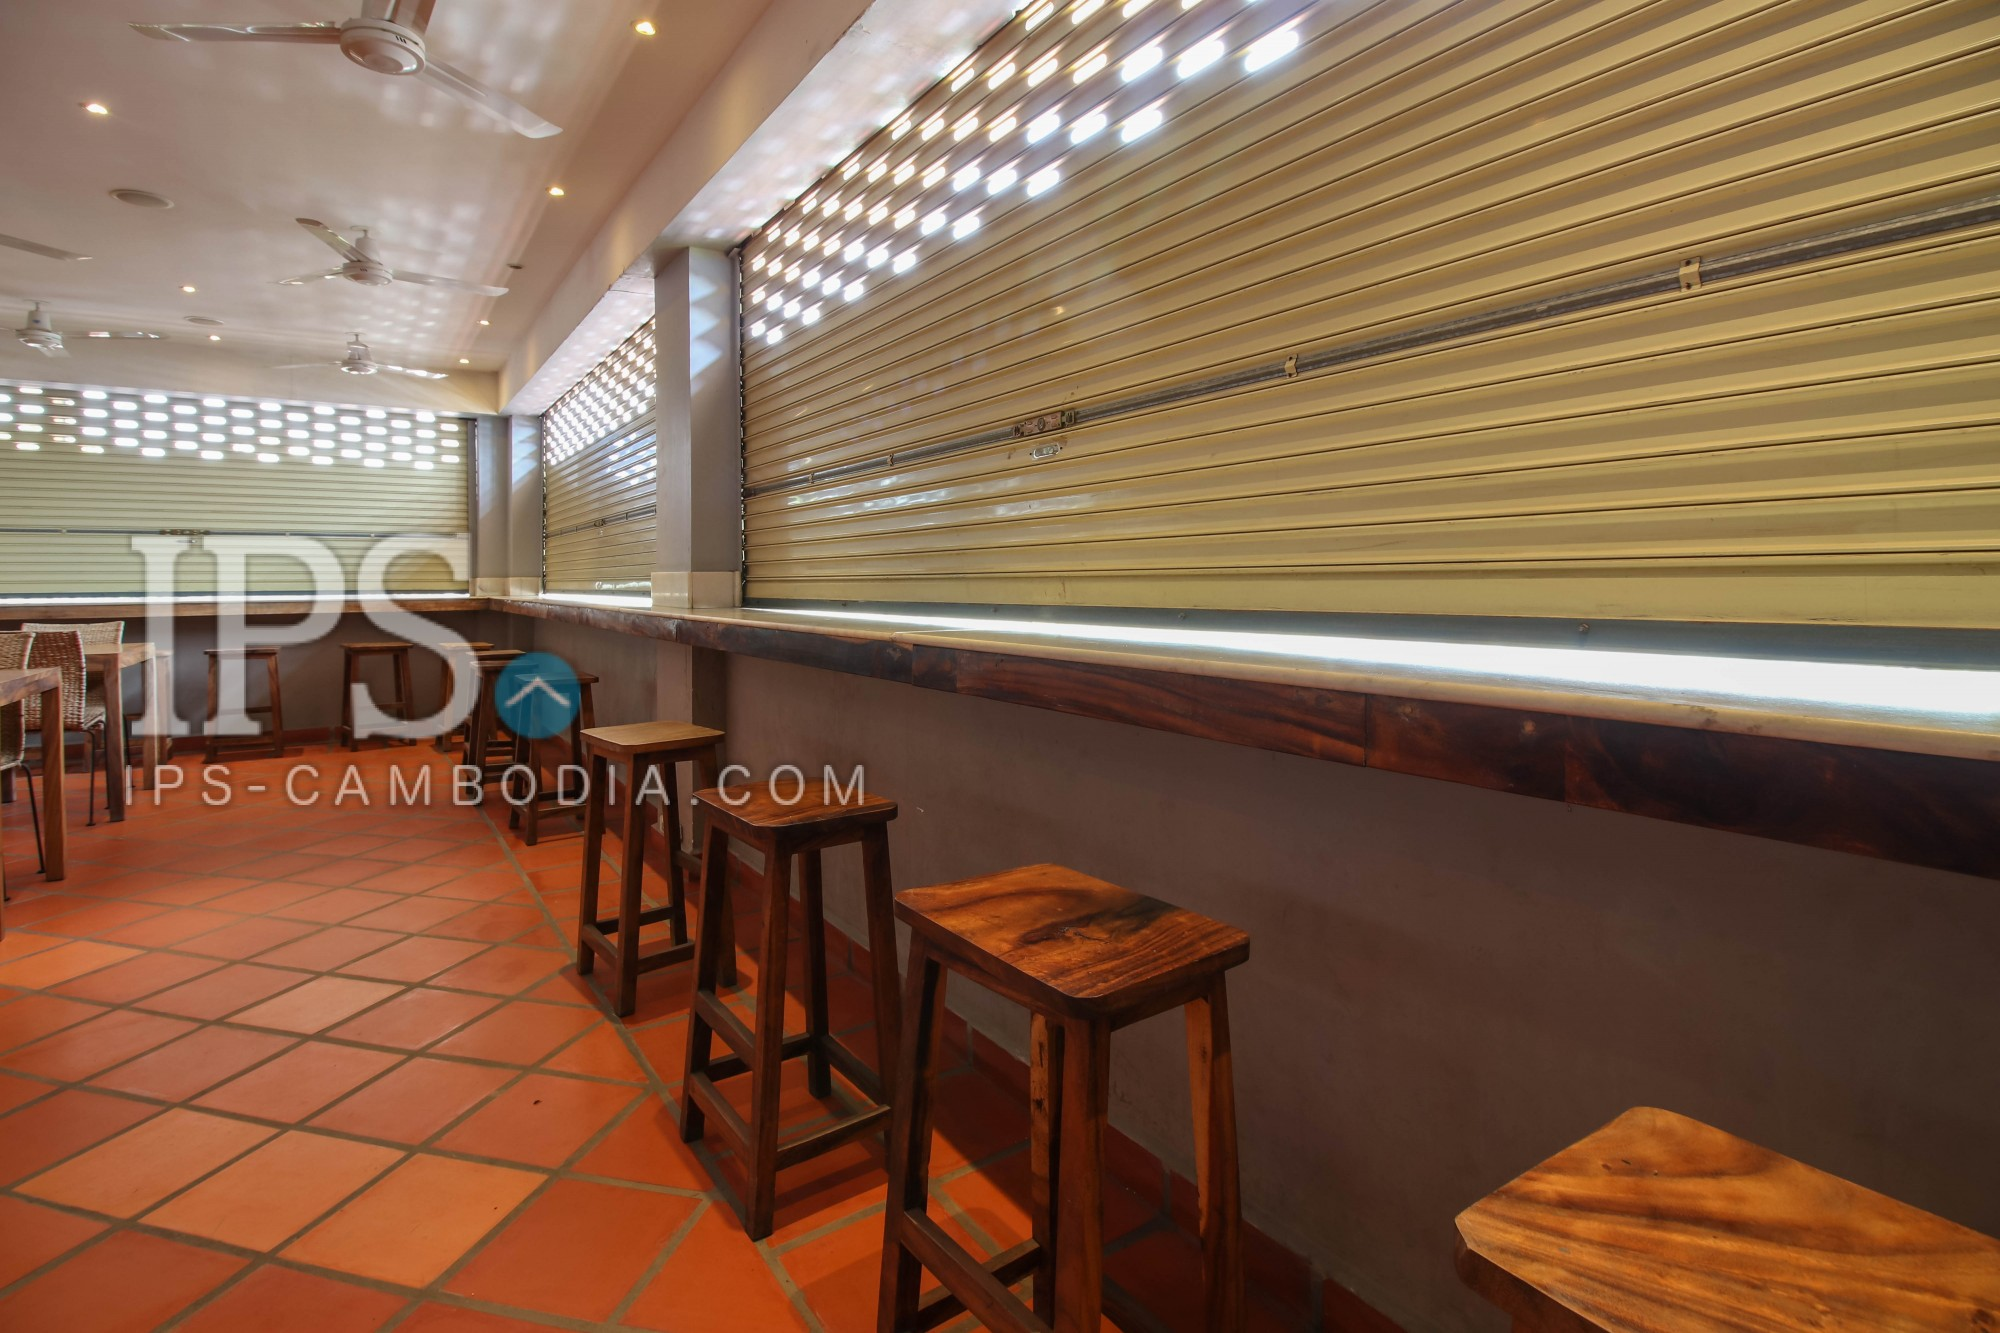 2 Floors Retail Space For Sale - Chroy Changva